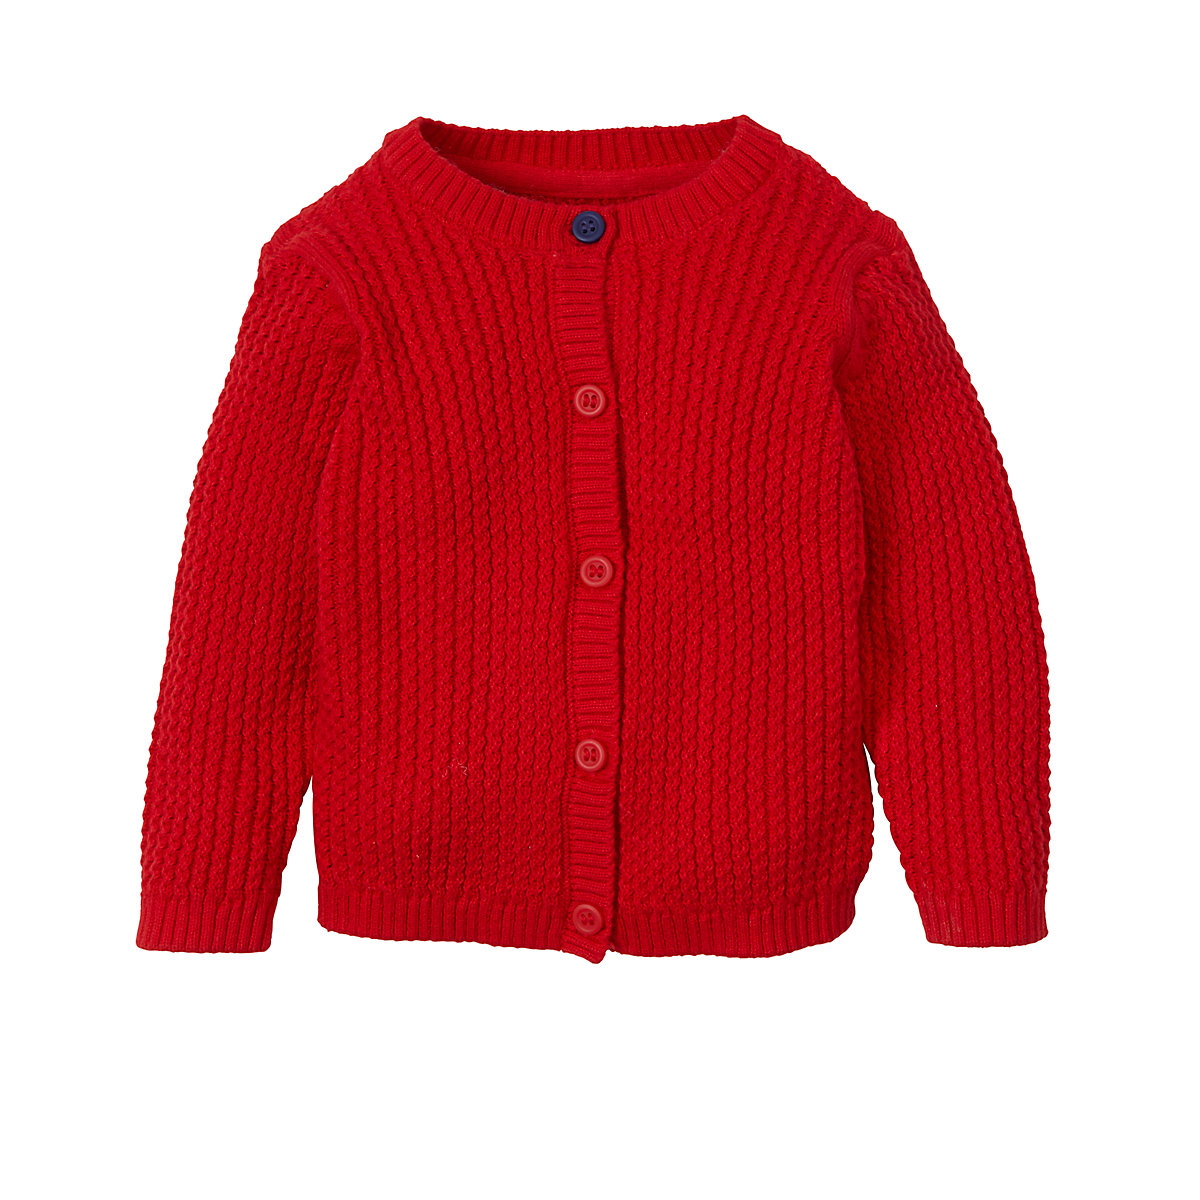 You searched for: red baby cardigan! Etsy is the home to thousands of handmade, vintage, and one-of-a-kind products and gifts related to your search. No matter what you're looking for or where you are in the world, our global marketplace of sellers can help you find unique and affordable options. Let's get started!